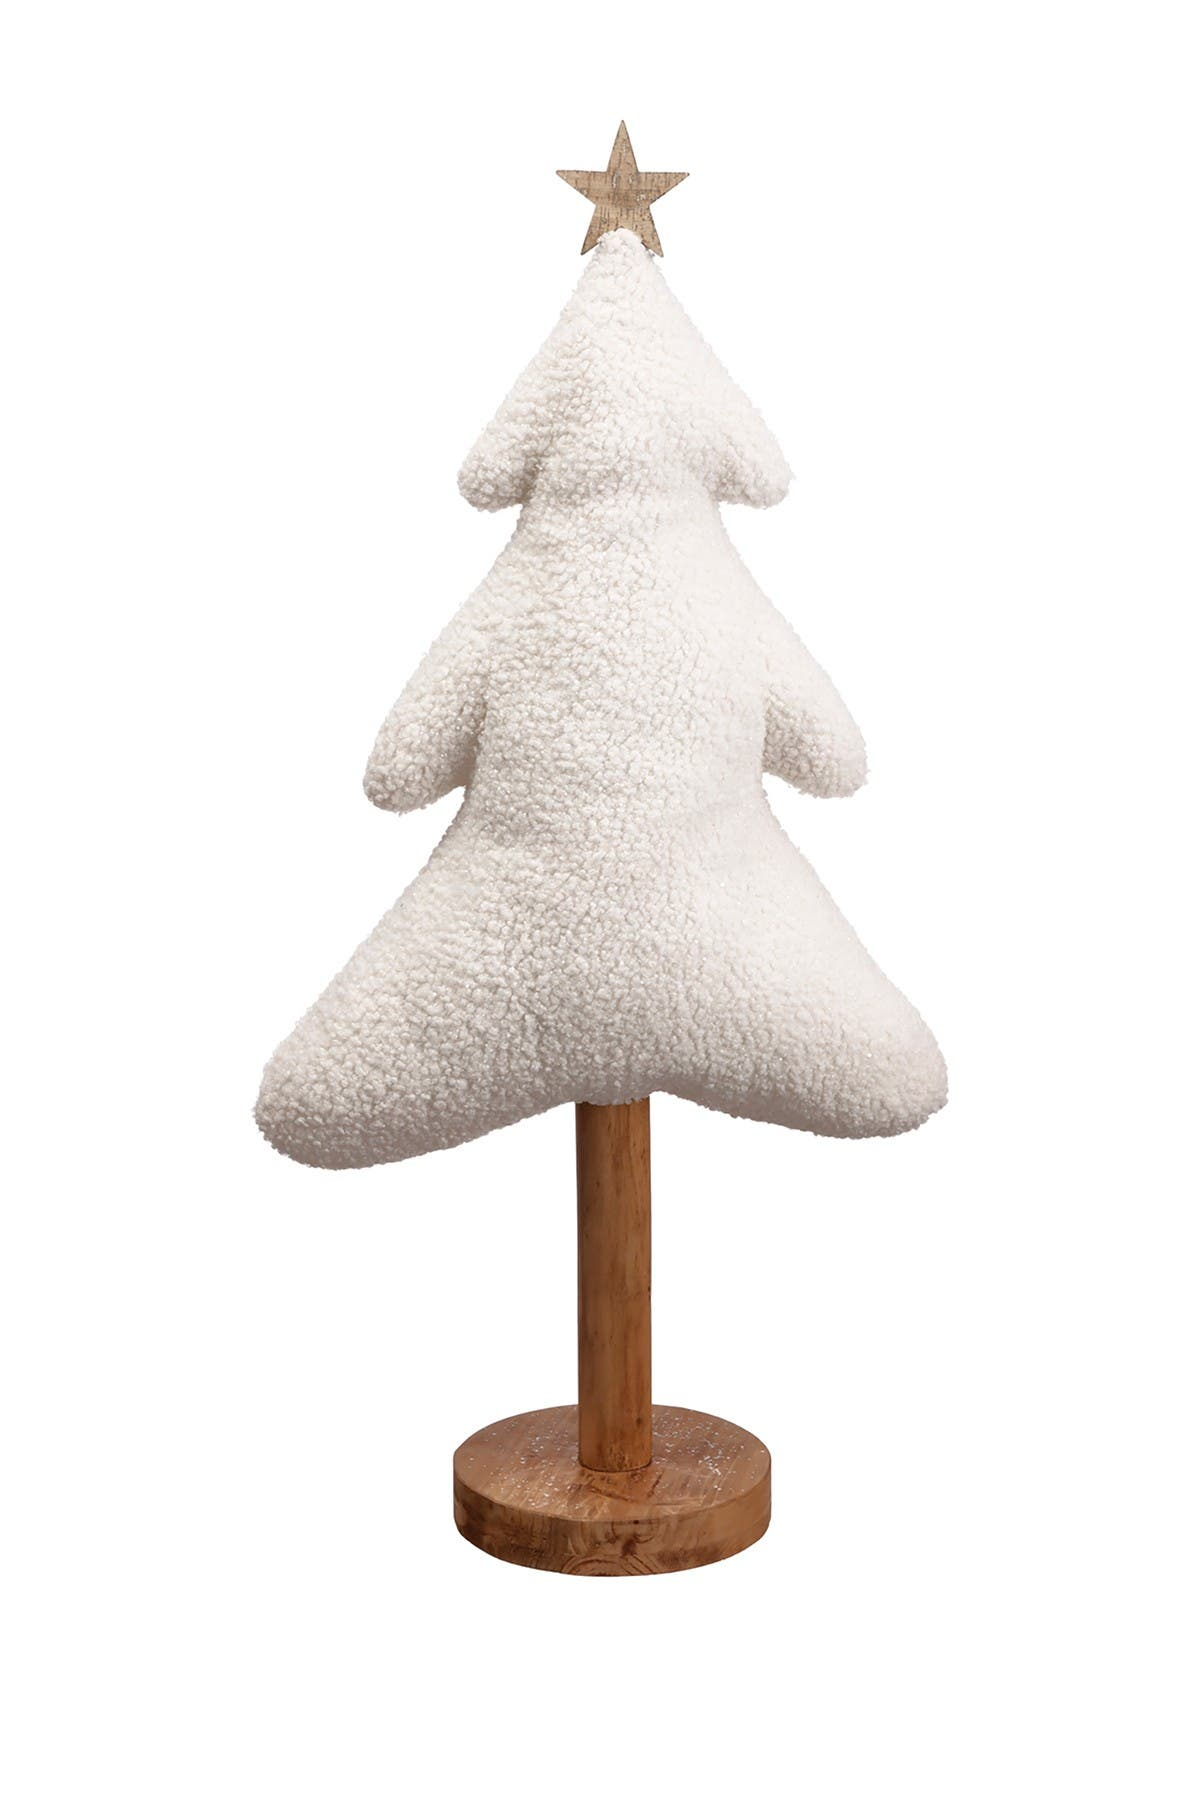 "Image of ALLSTATE 32"" Christmas Tree with Star"